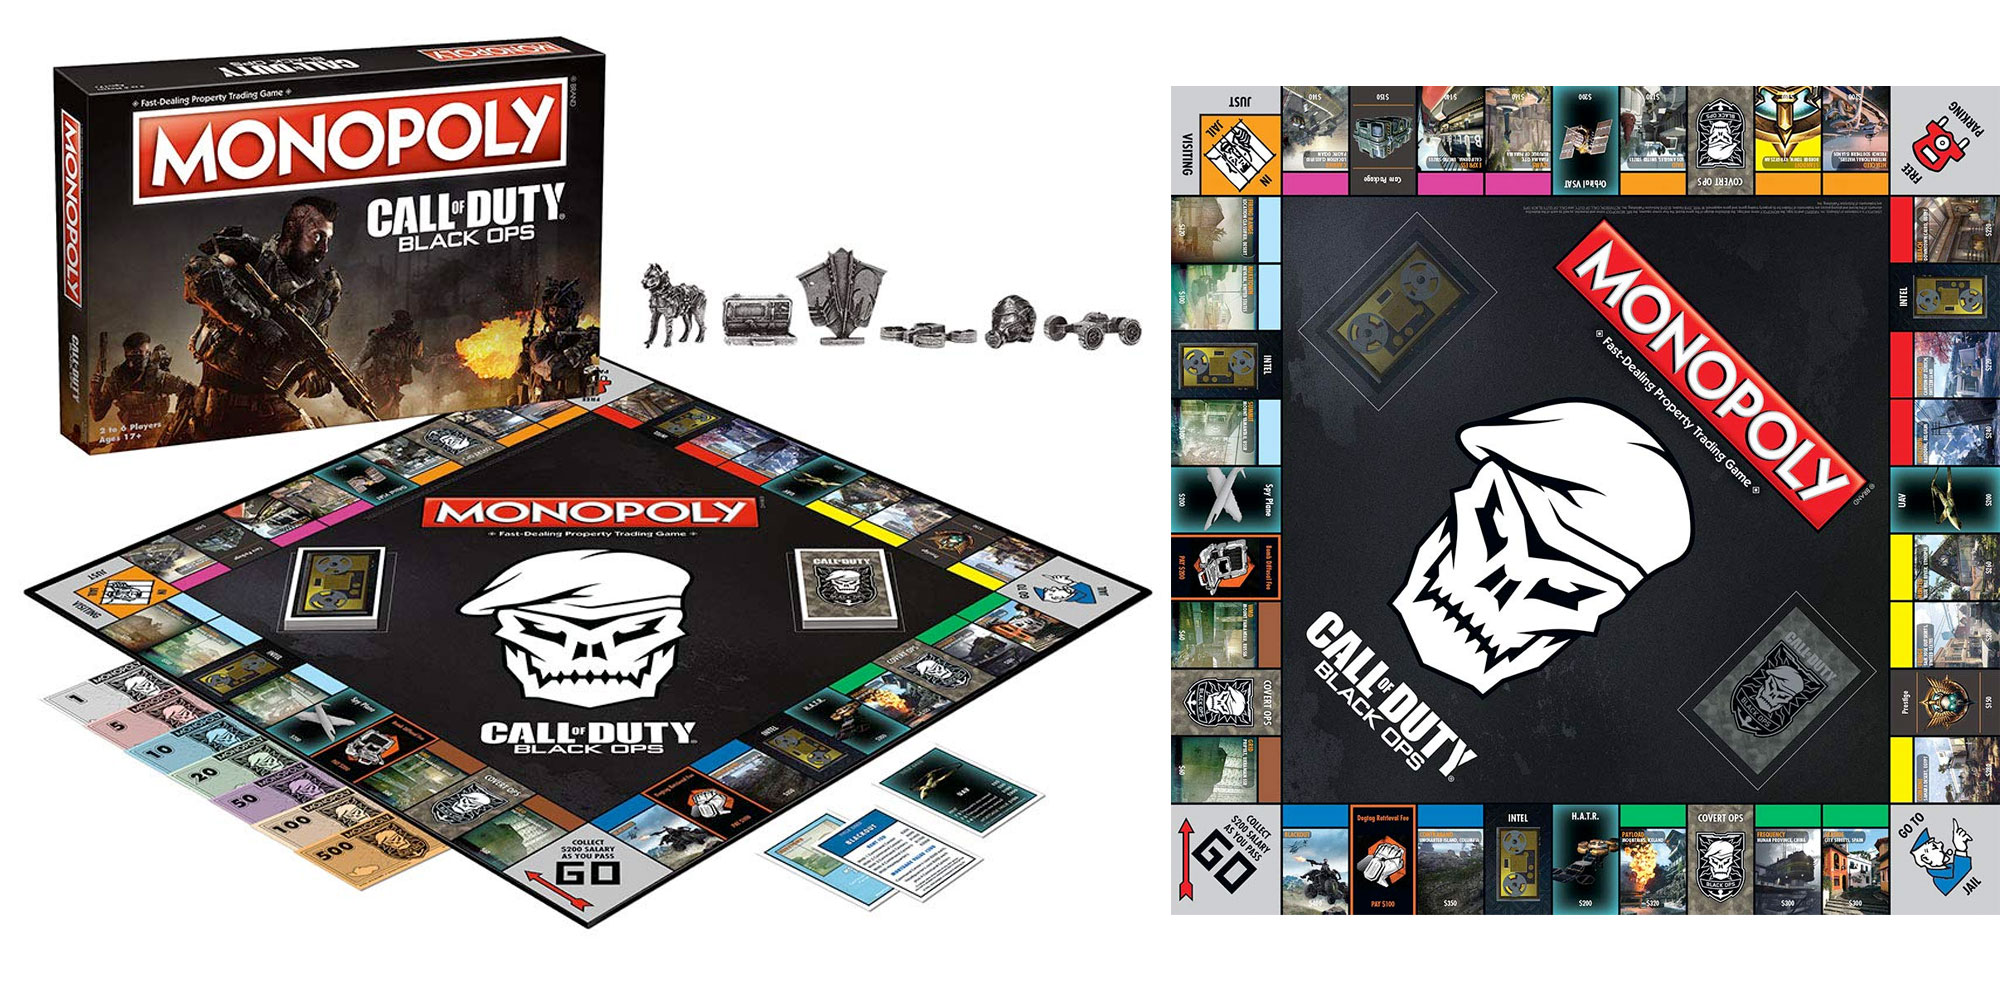 Stay warm & play Monopoly Call of Duty or BoJack Horseman during the cold weather from $9.50